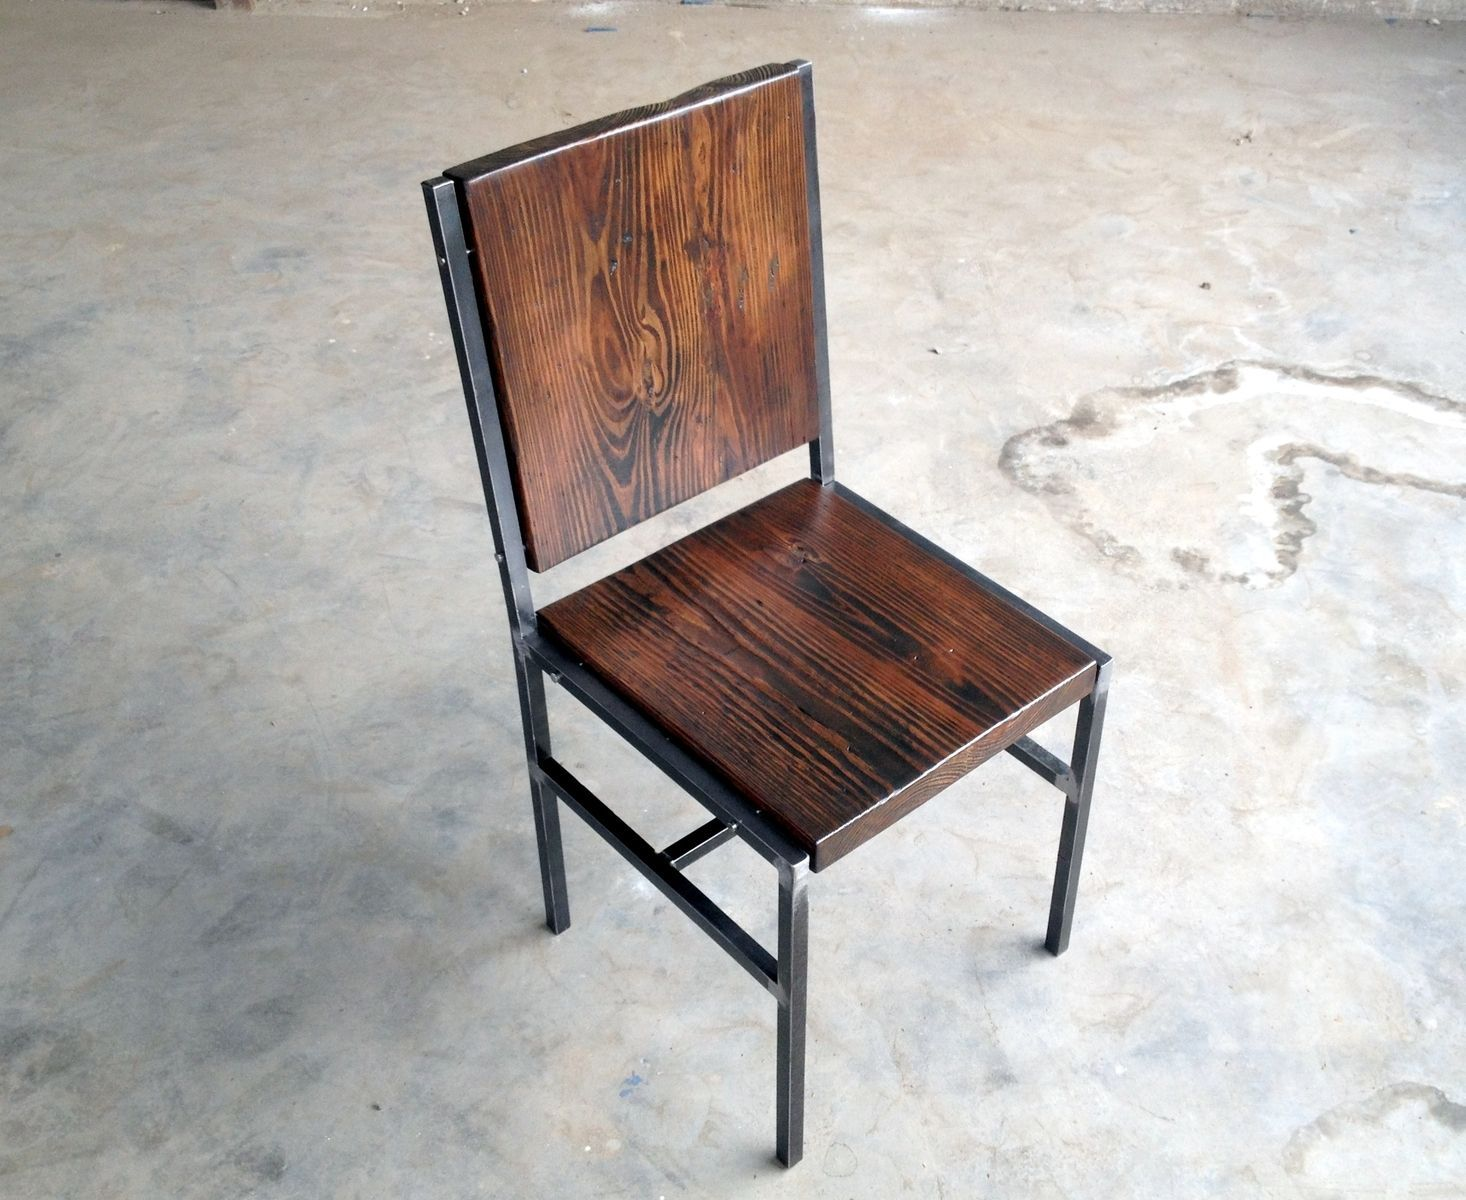 Future chairs for tasting room custom made chair stool made of reclaimed wood and steel with iron pins